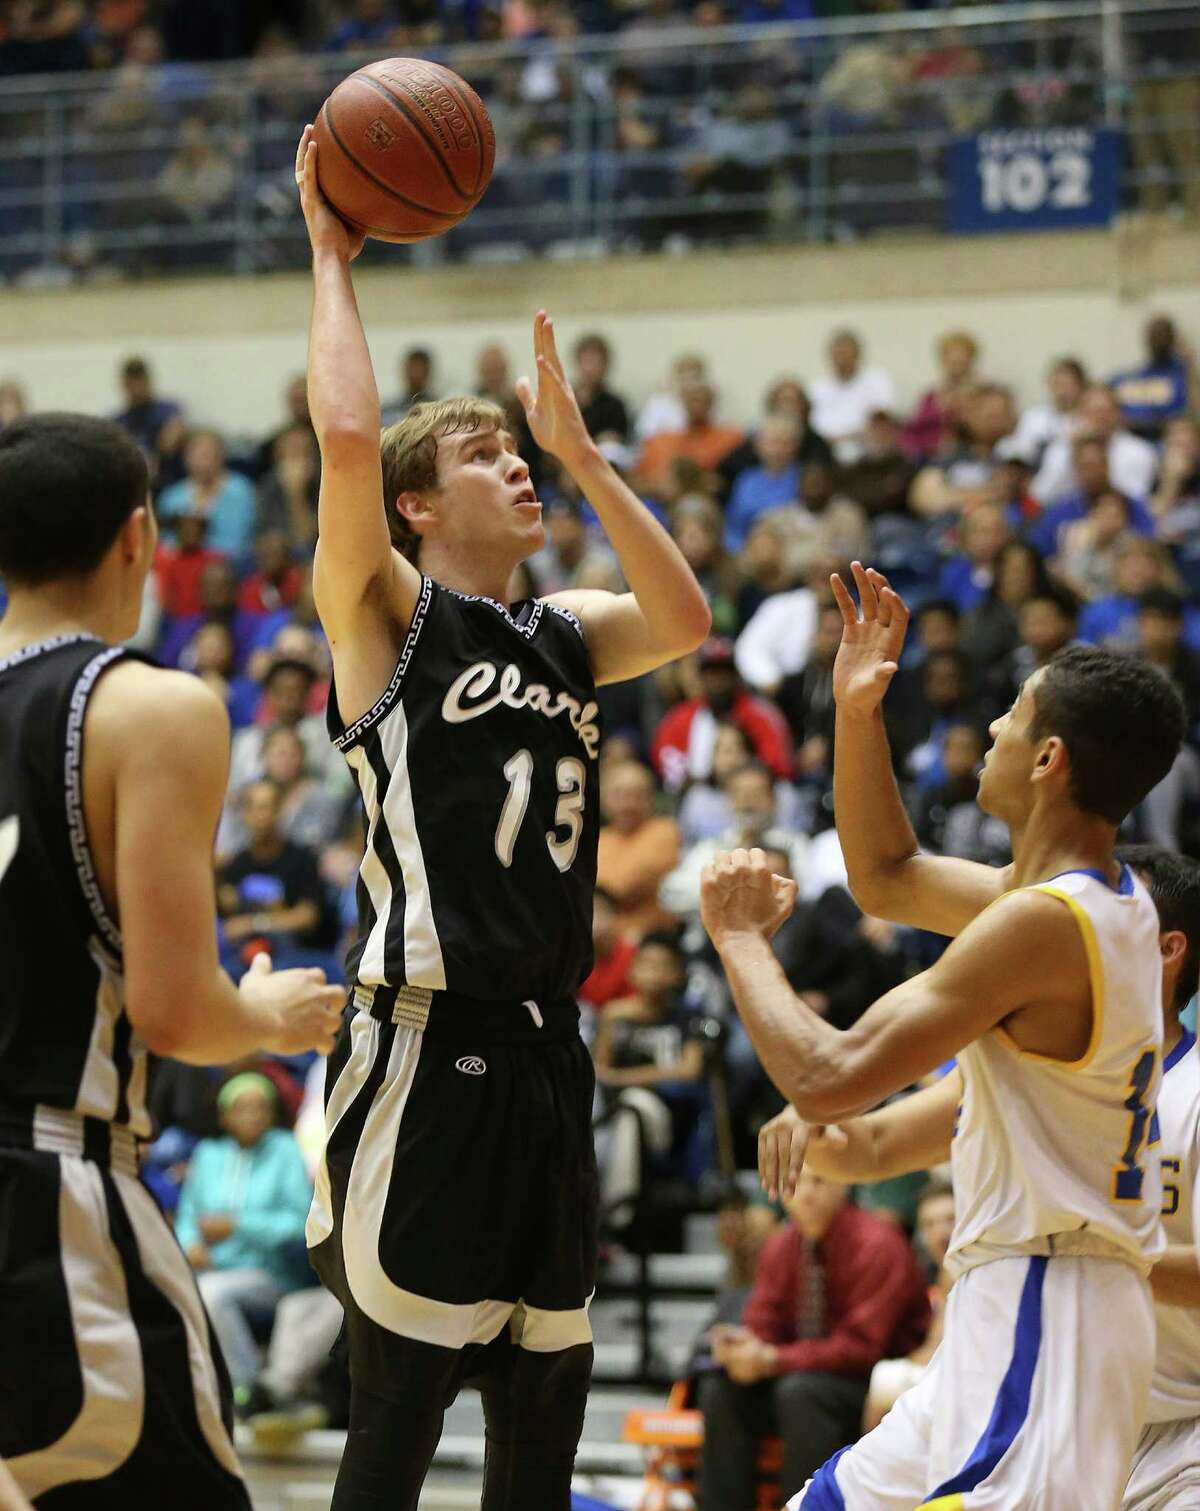 No. 18 Clark Cougars State ranking: 35 2016-2017 record: 16-16